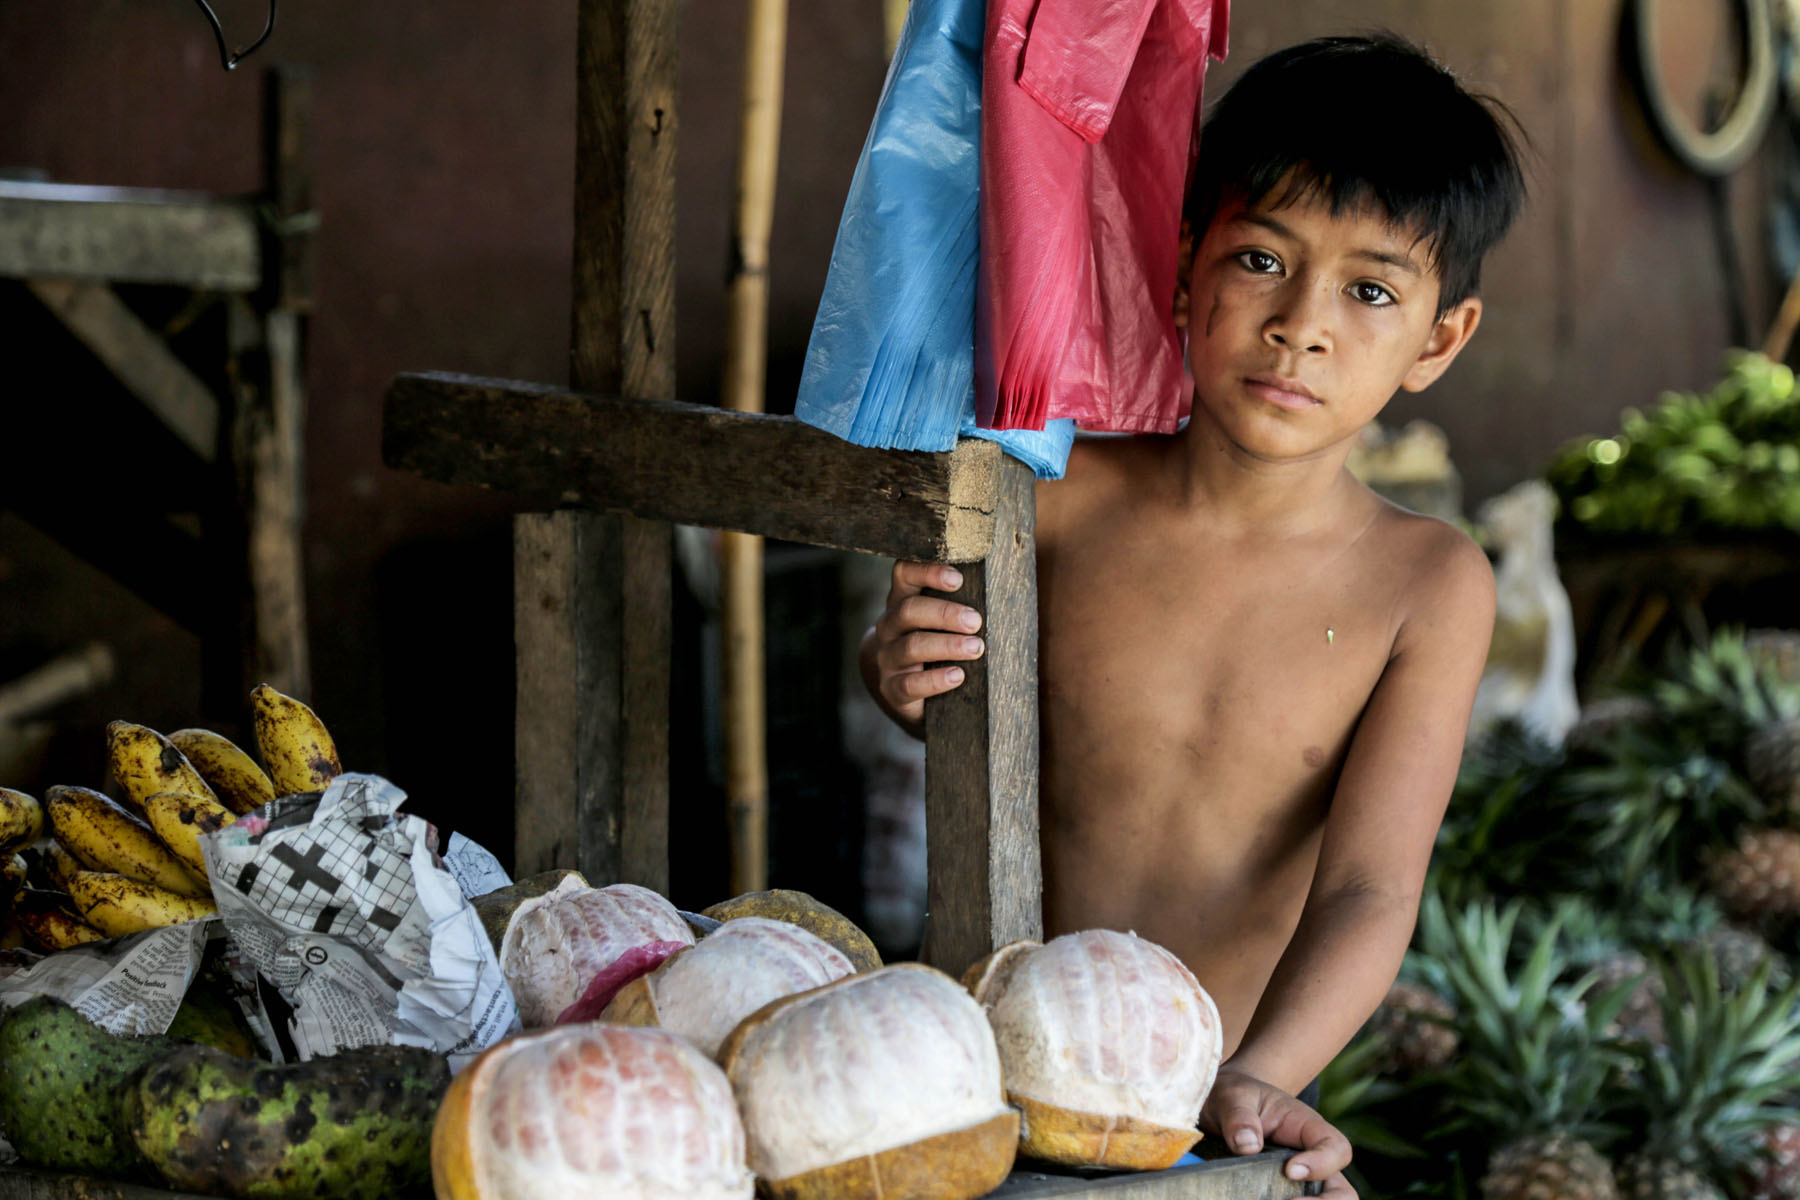 Young Boy, Philipines, photo by: Pfc. Noel Toye